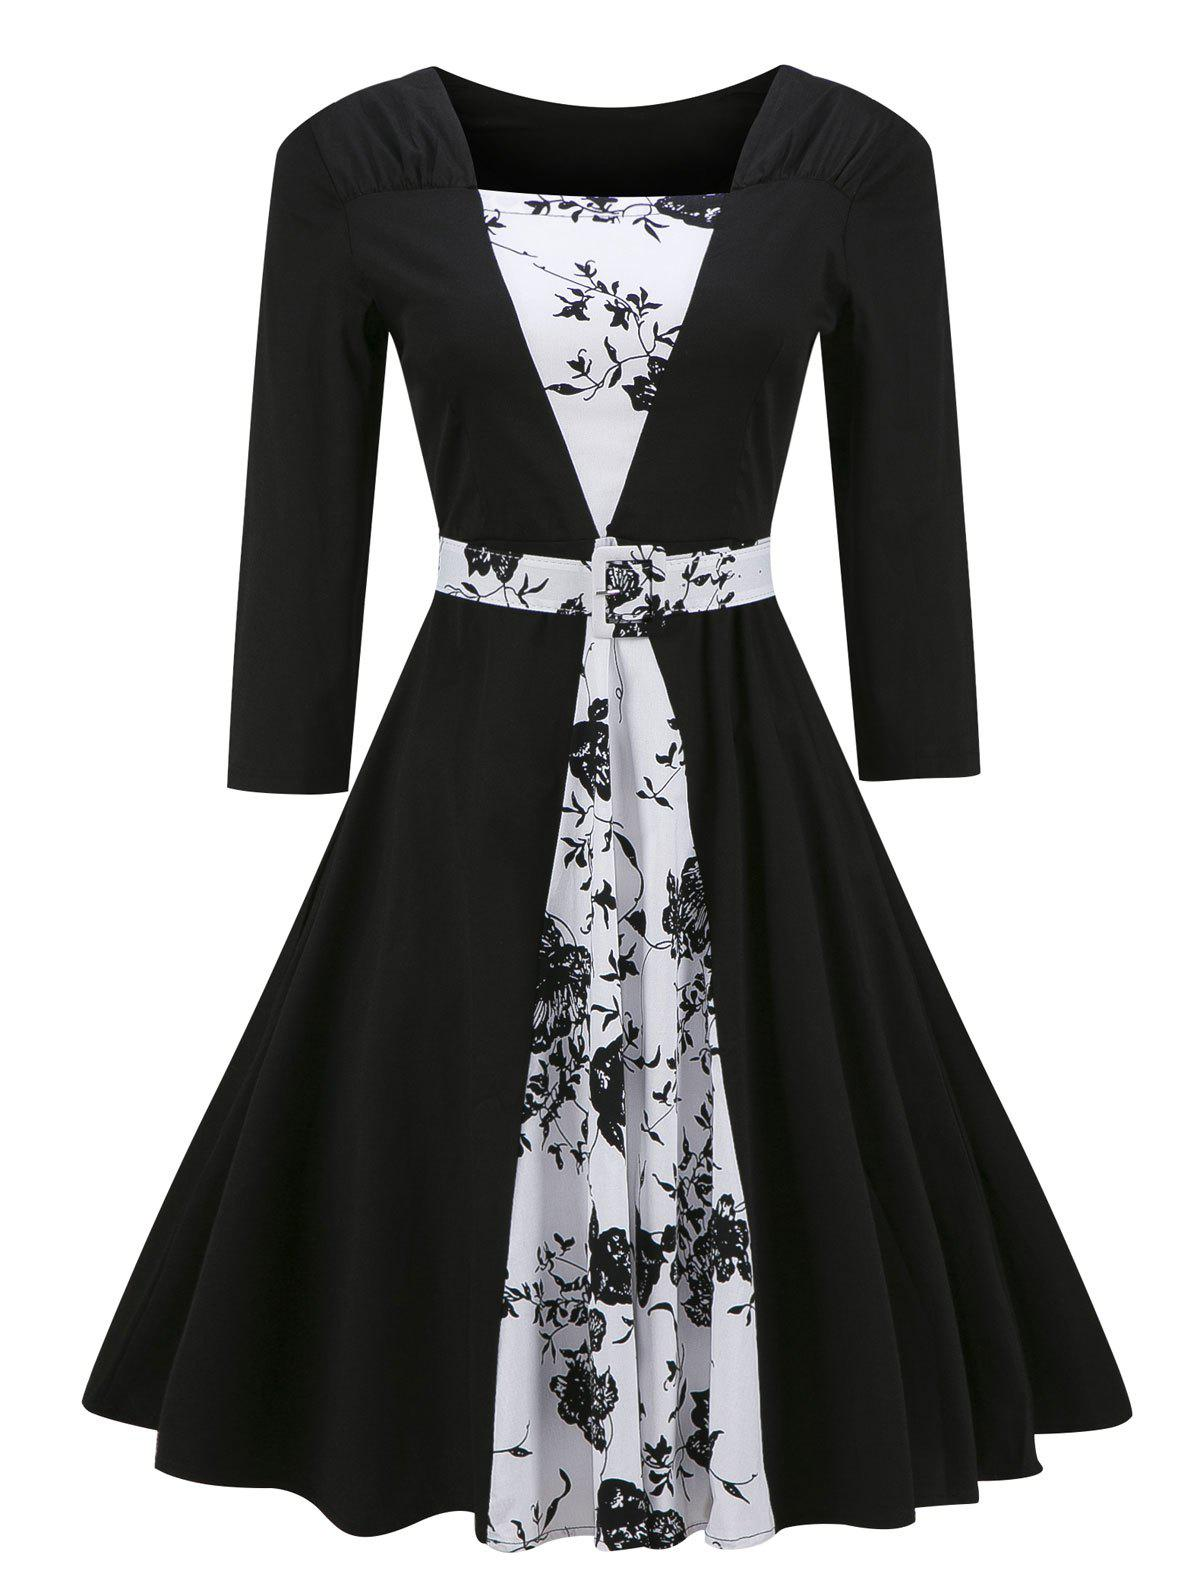 Vintage Color Block Floral Print Pin Up DressWOMEN<br><br>Size: 2XL; Color: BLACK; Style: Vintage; Material: Cotton,Polyester; Silhouette: A-Line; Dresses Length: Knee-Length; Neckline: Square Collar; Sleeve Length: 3/4 Length Sleeves; Pattern Type: Floral; With Belt: Yes; Season: Fall,Spring; Weight: 0.4000kg; Package Contents: 1 x Dress  1 x Belt;